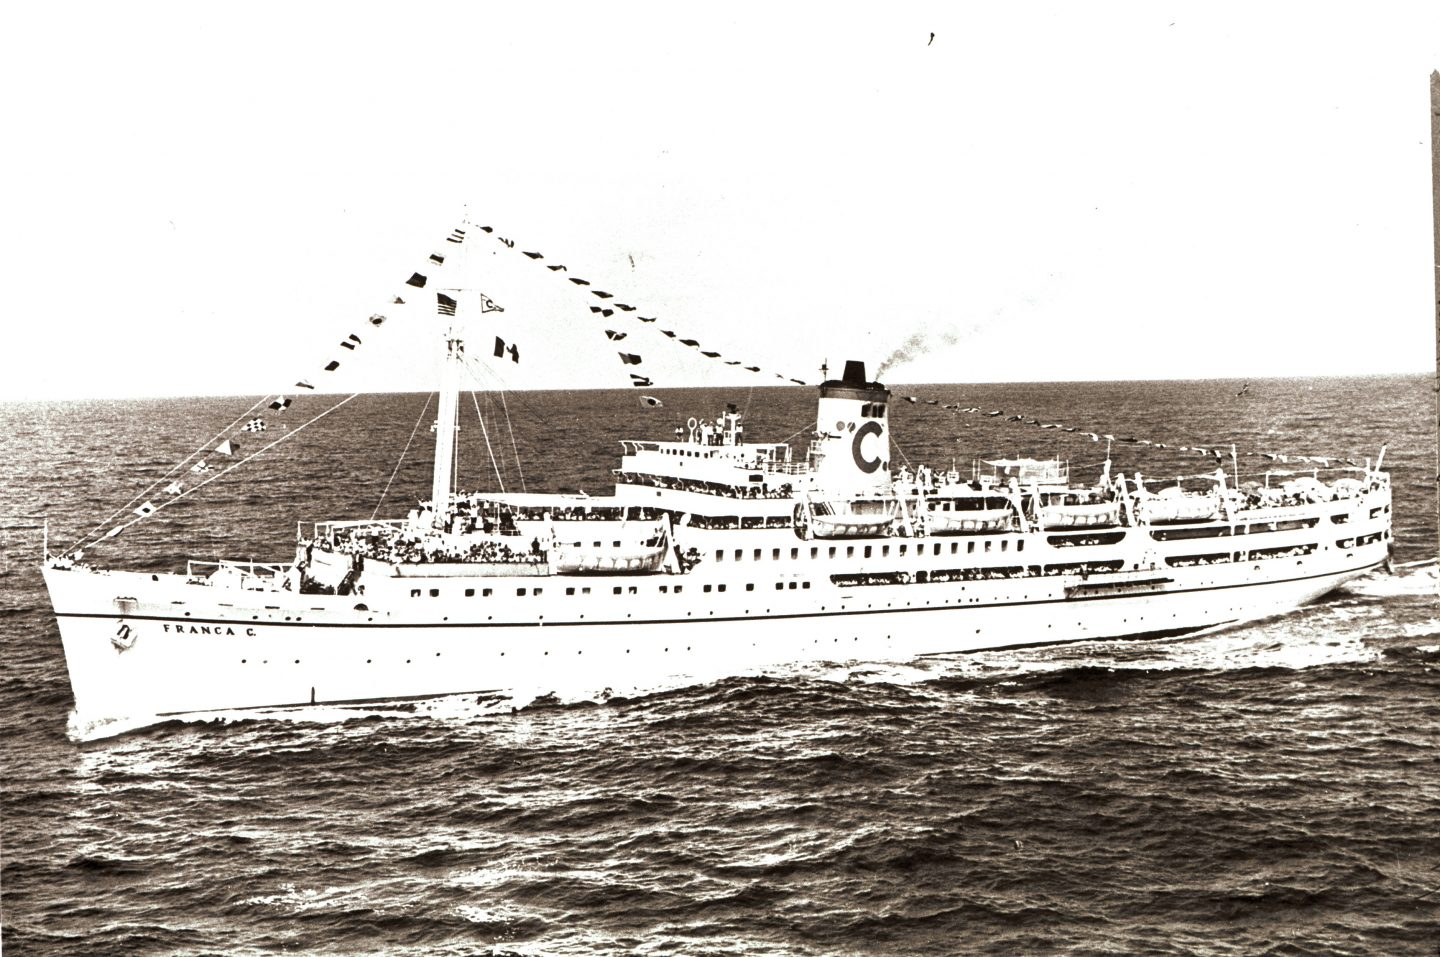 Roma was sold in 1952 and renamed Franca C. It worked as a passenger ship for transport between Italy and Argentina until it was remodelled into a first-class luxury liner in 1959, which travelled around the Mediterranean ports with occasional trips into the Black Sea.